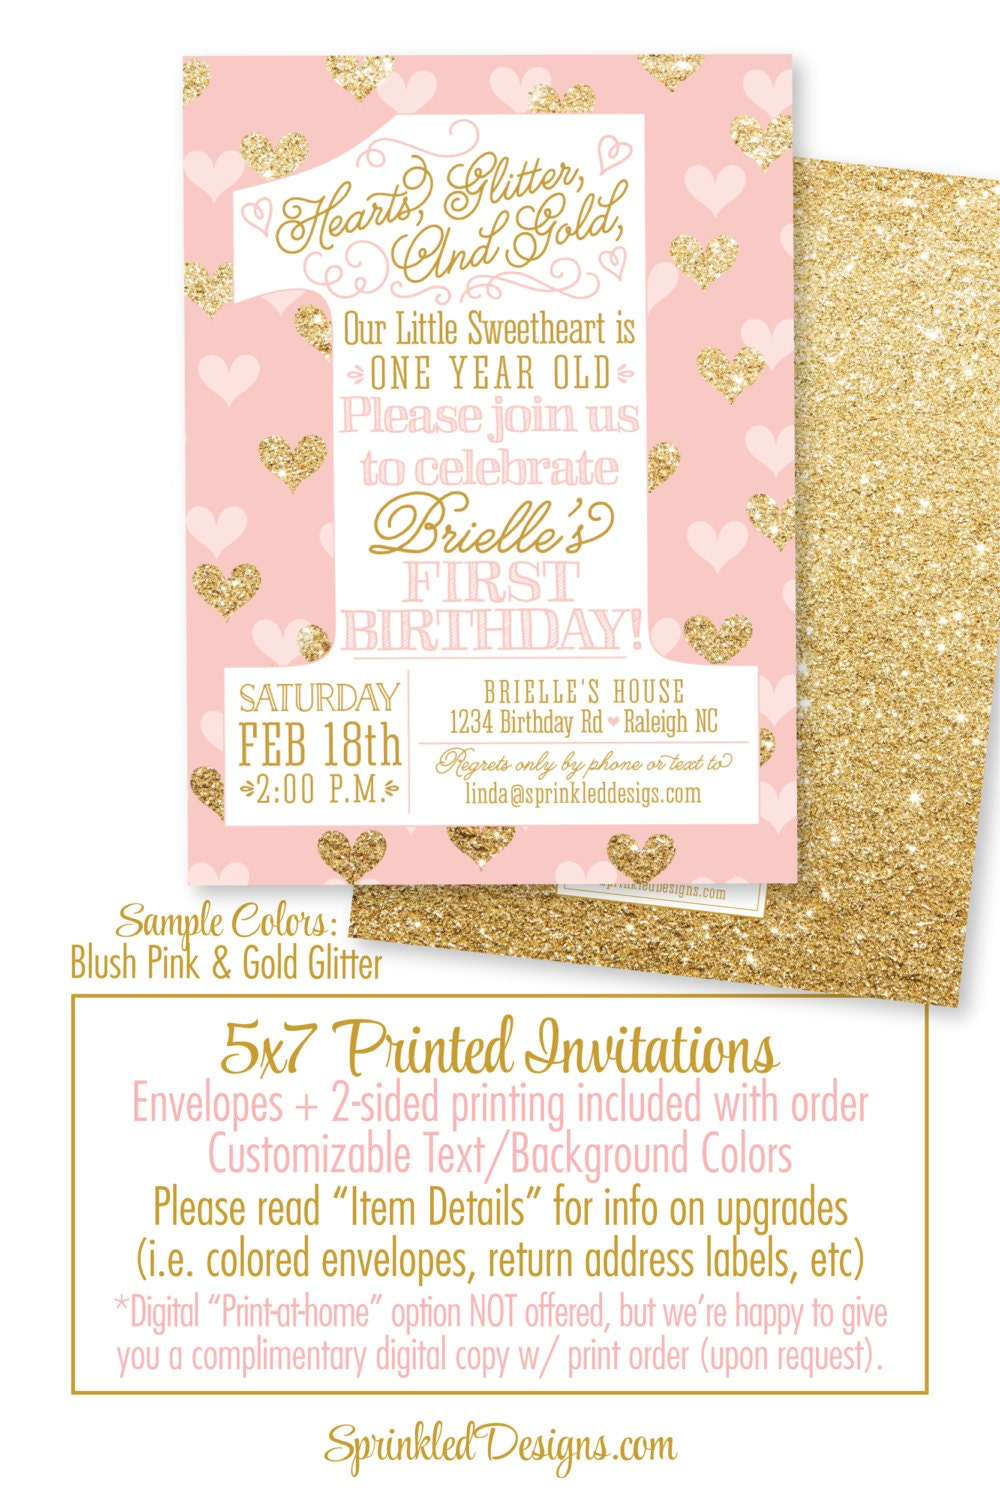 Our Little Sweetheart 1st Birthday Invitation One Year Old